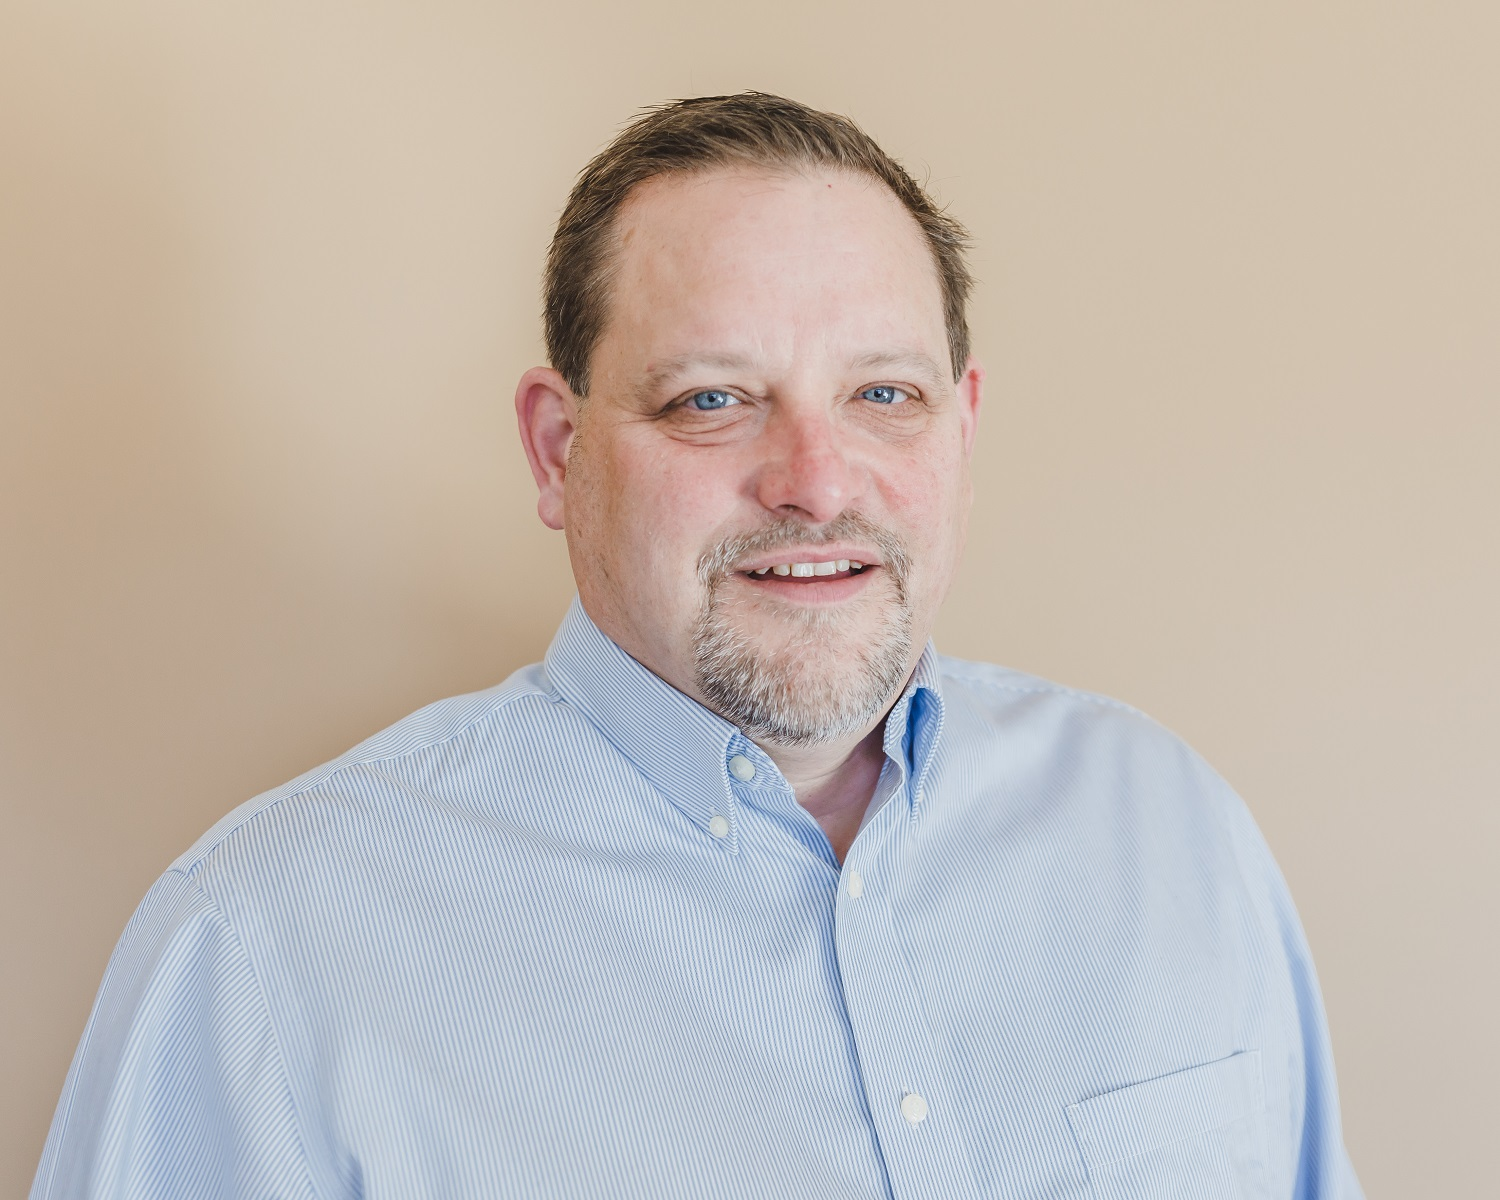 Mark D. Price, CPA